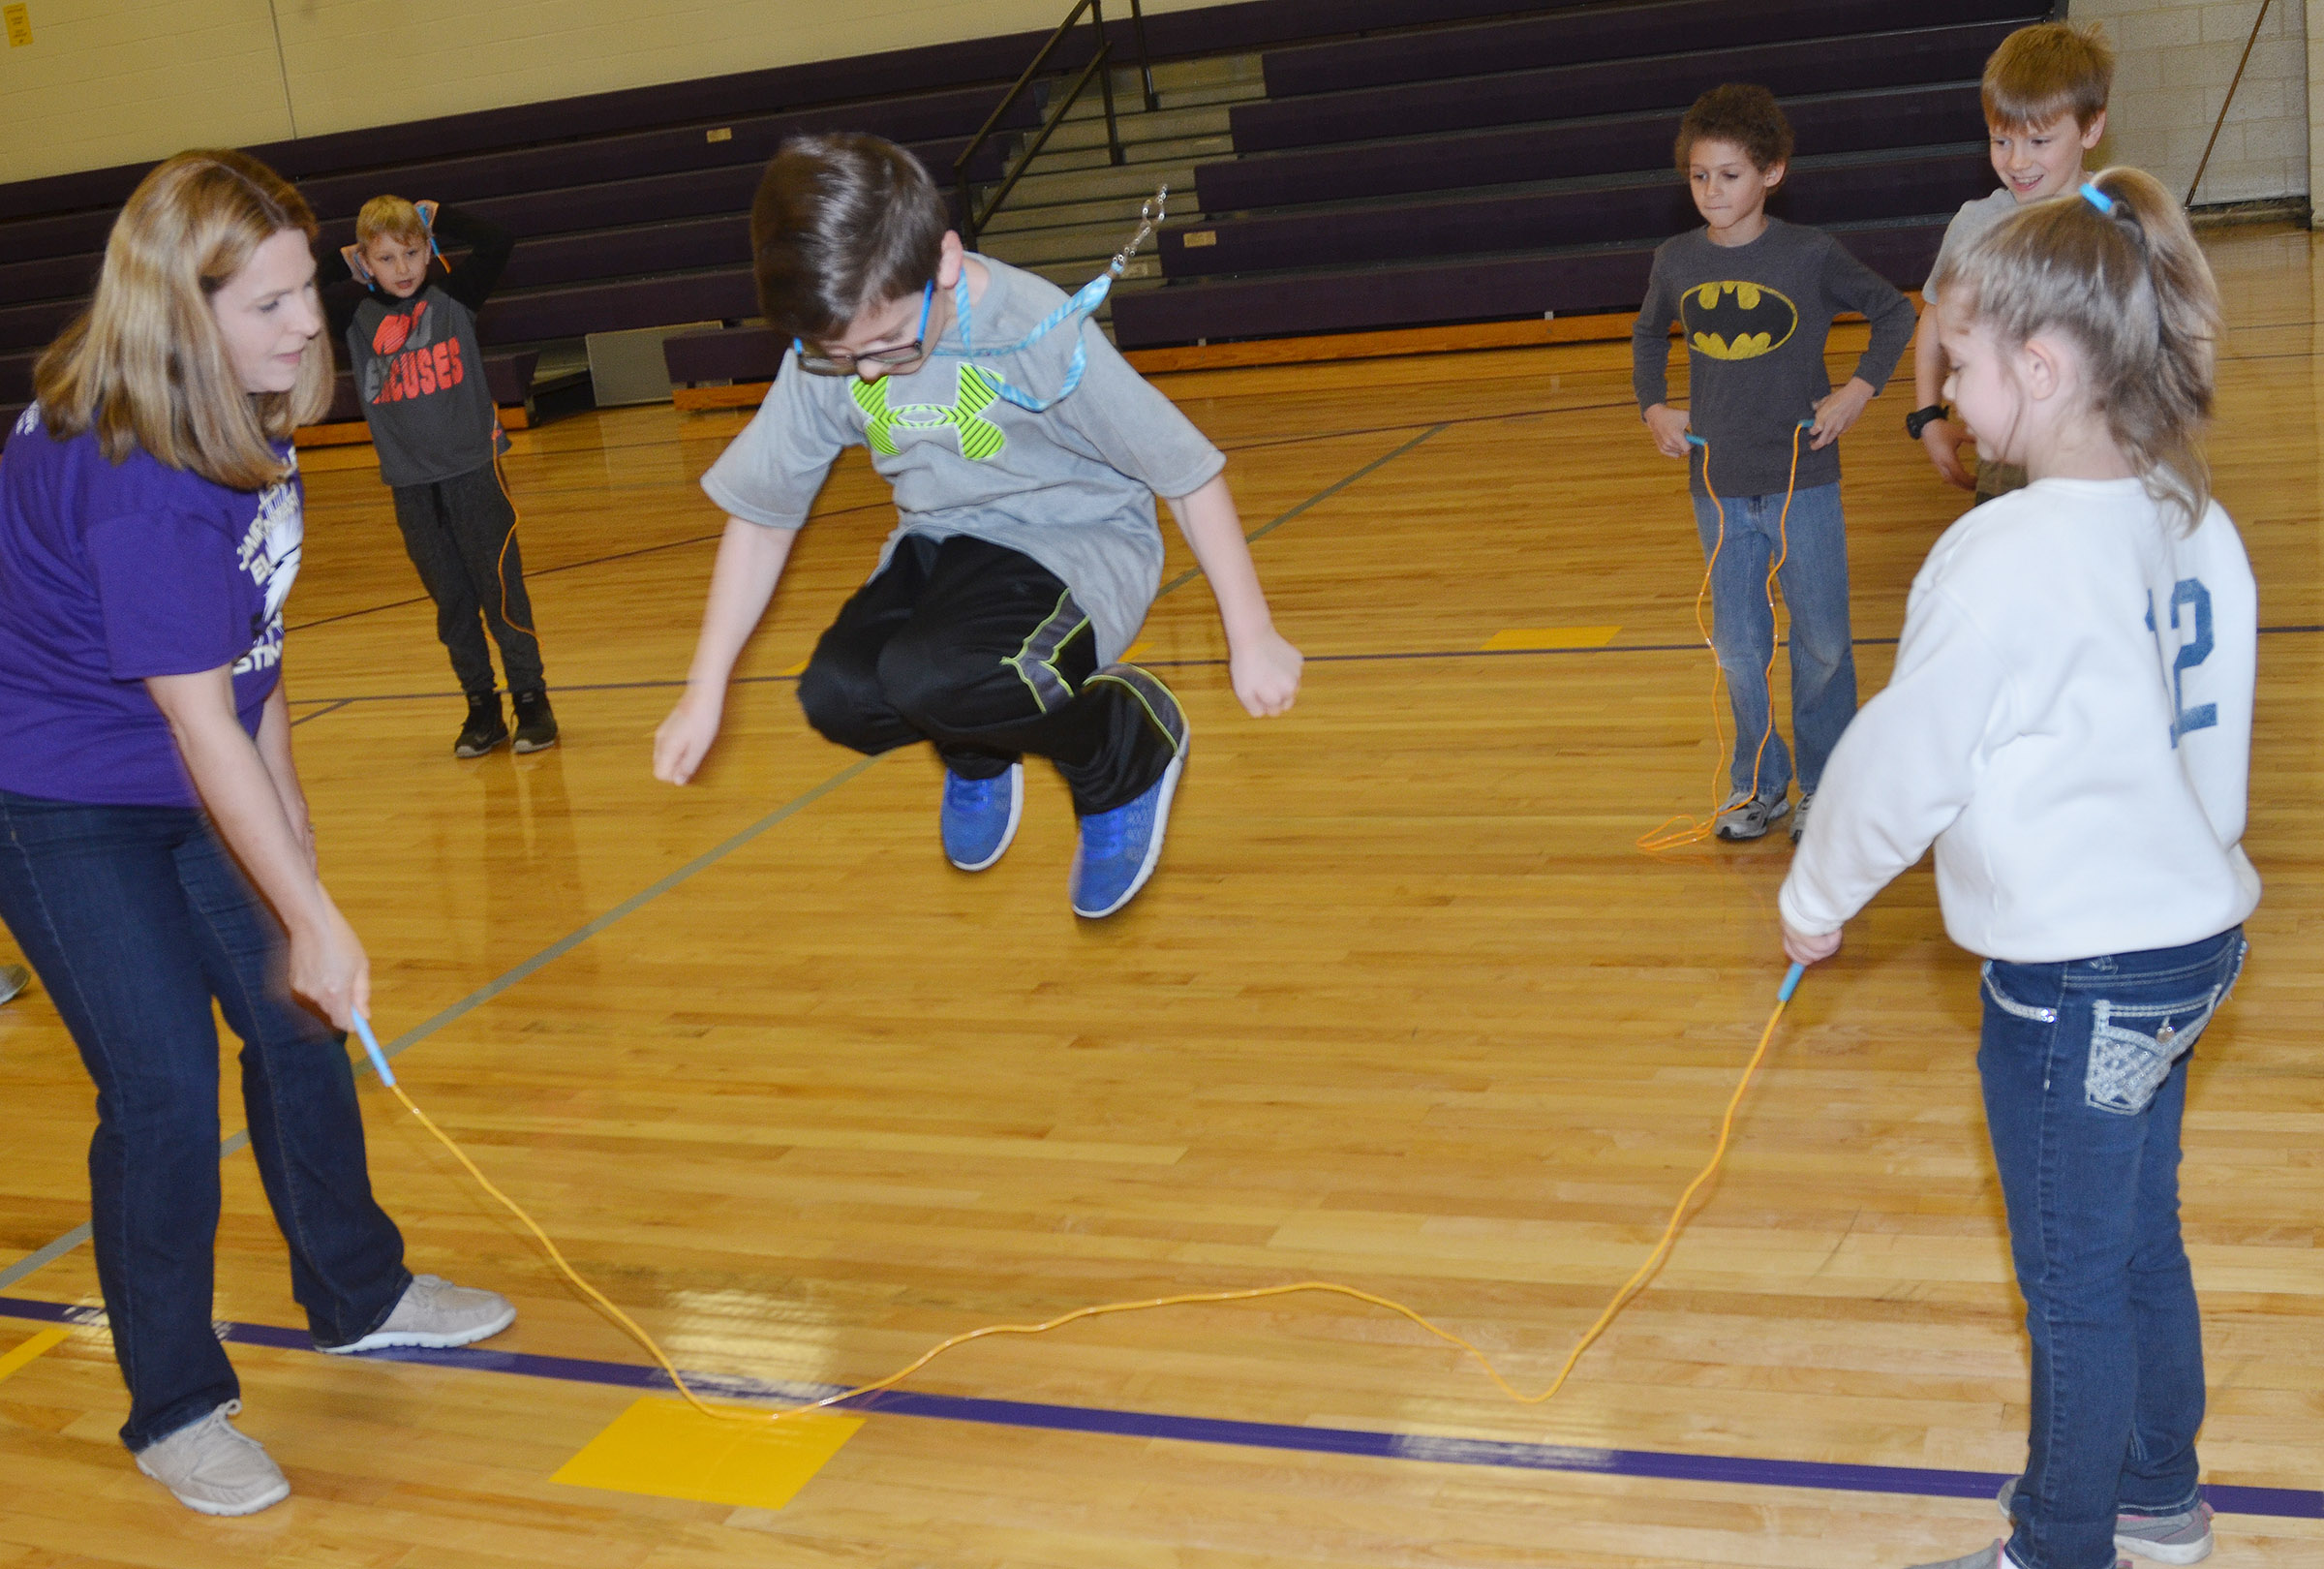 CES Guidance Counselor Sonya Orberson, at left, and third-grader Chyanne Christie jump rope with second-grader Tye Rhodes.